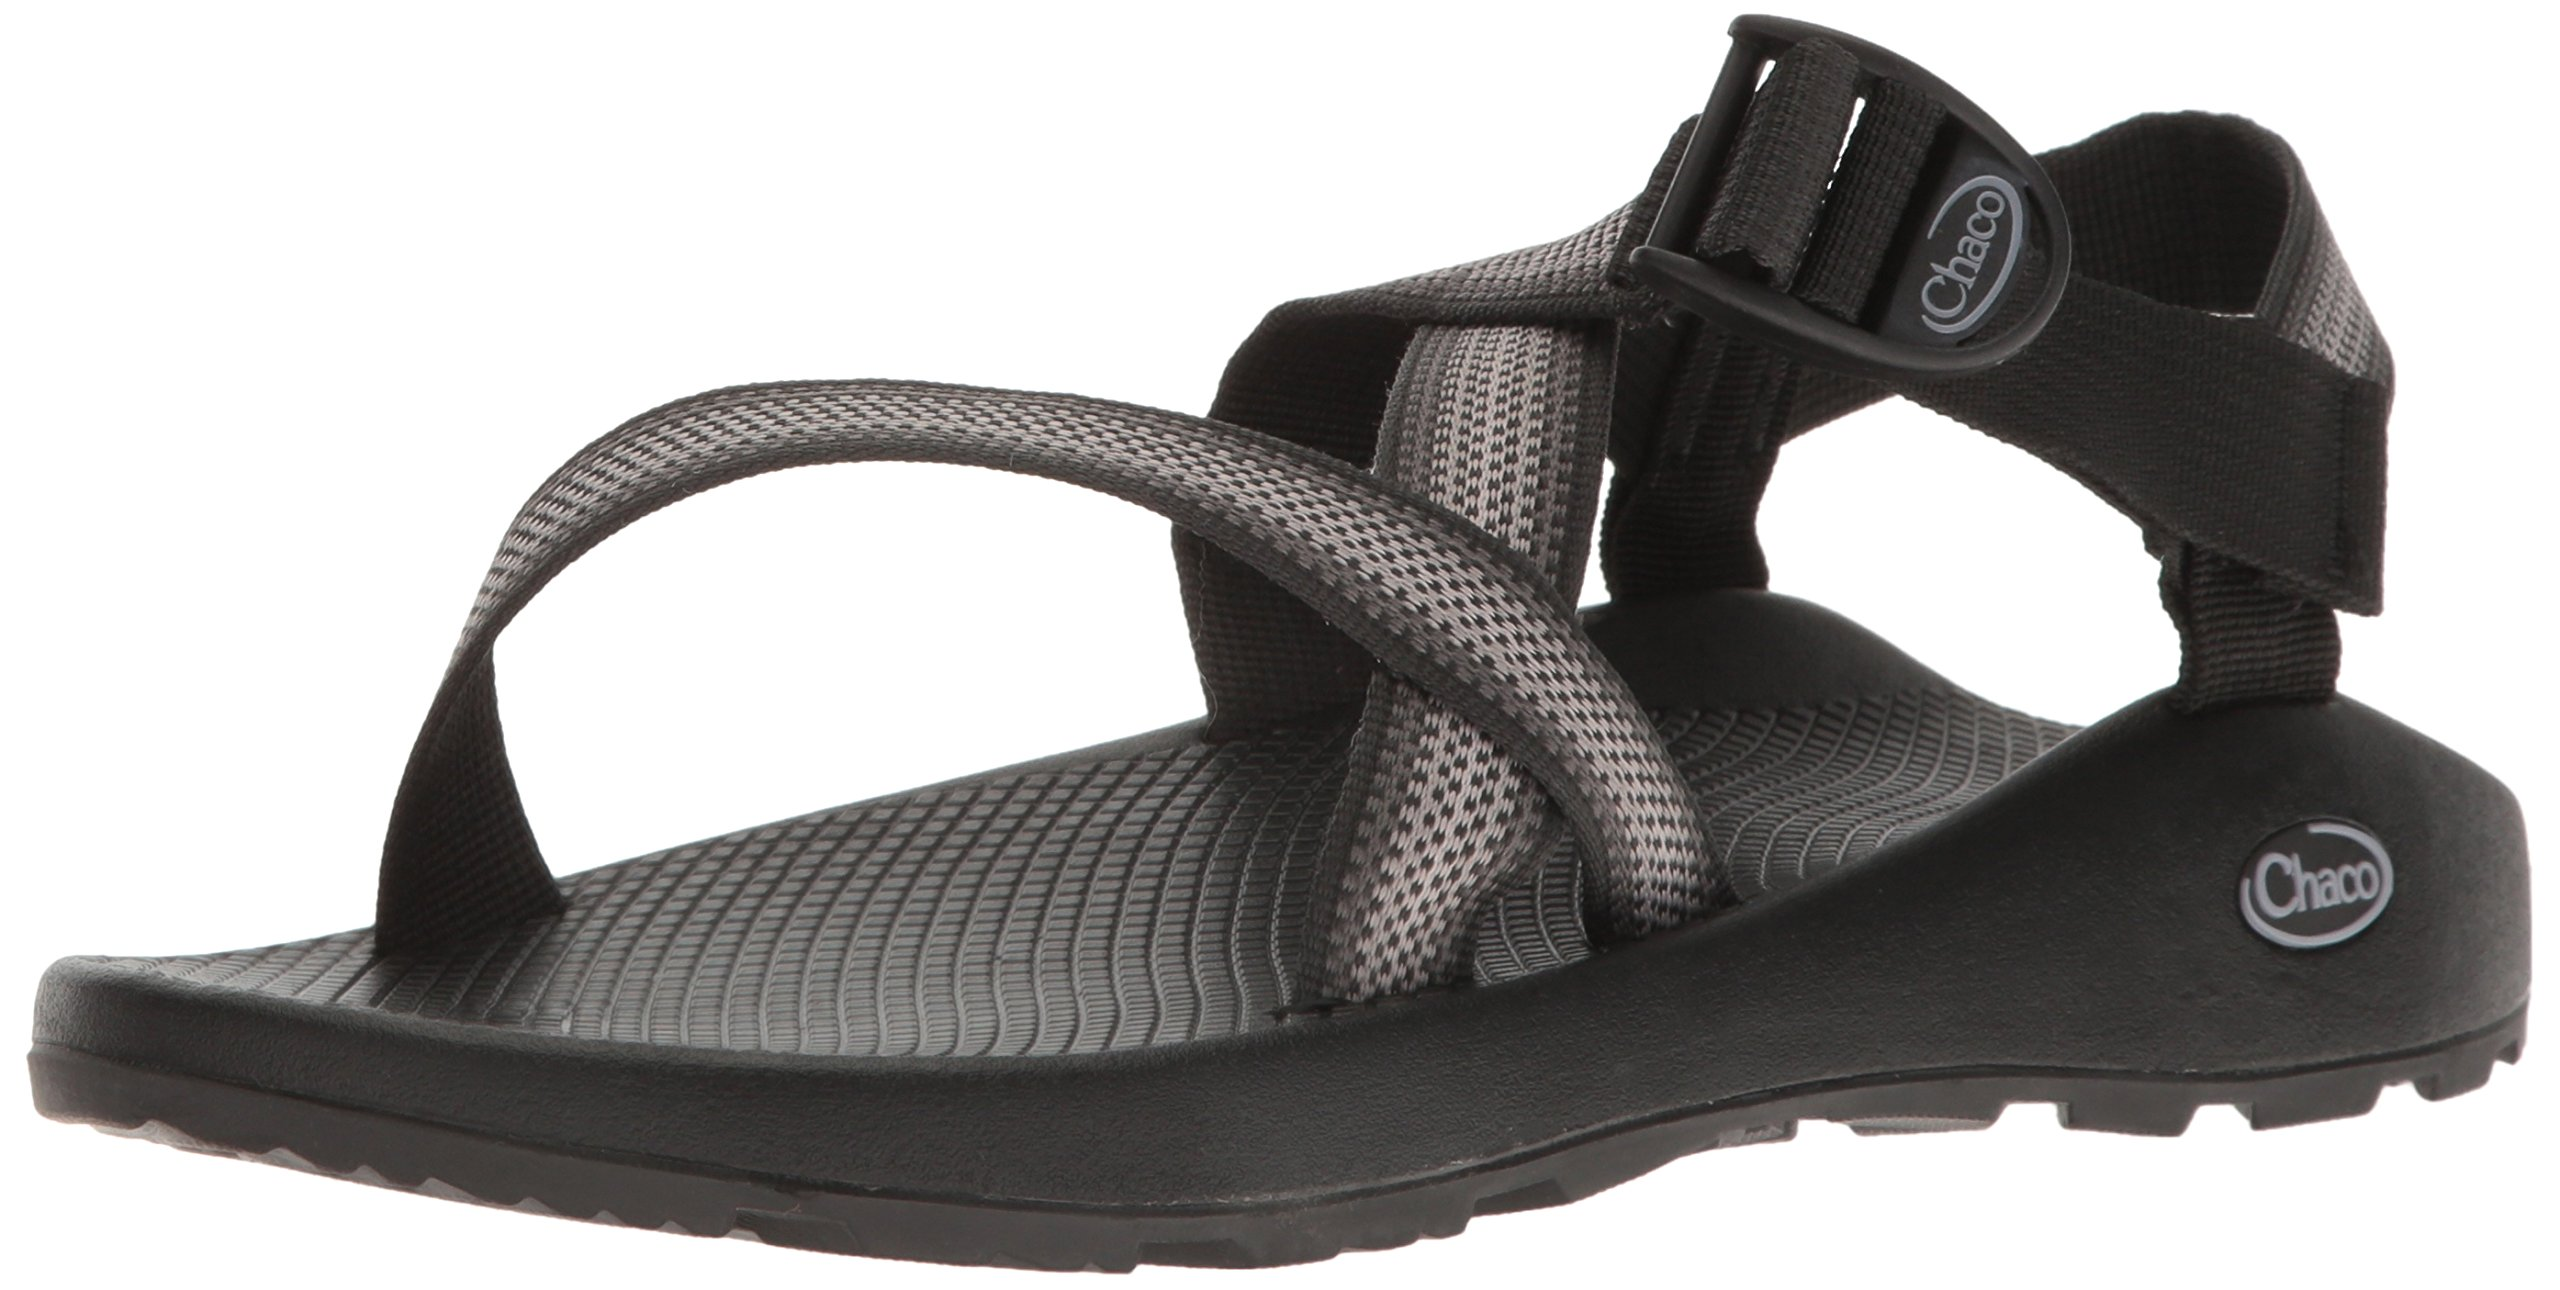 Chaco Men's Z1 Classic Athletic Sandal, Split Gray, 11 M US by Chaco